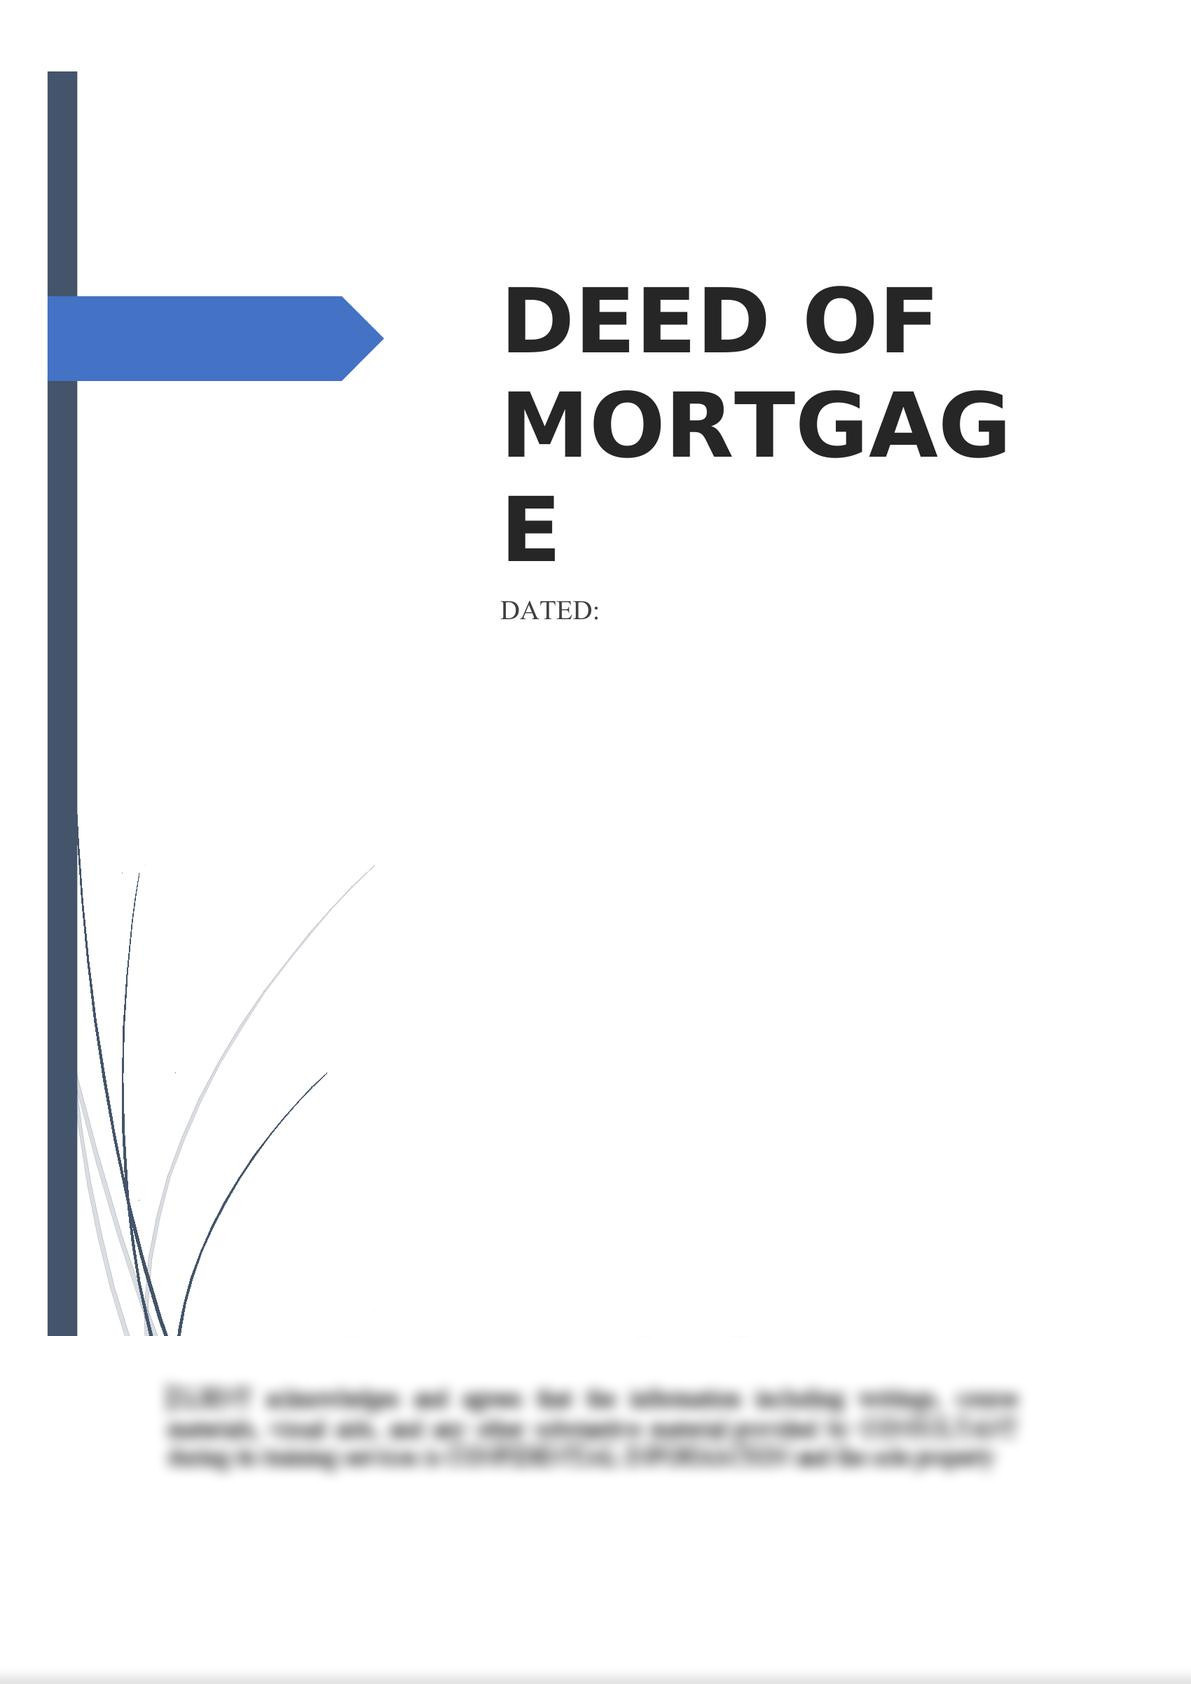 Deed of Mortgage -0